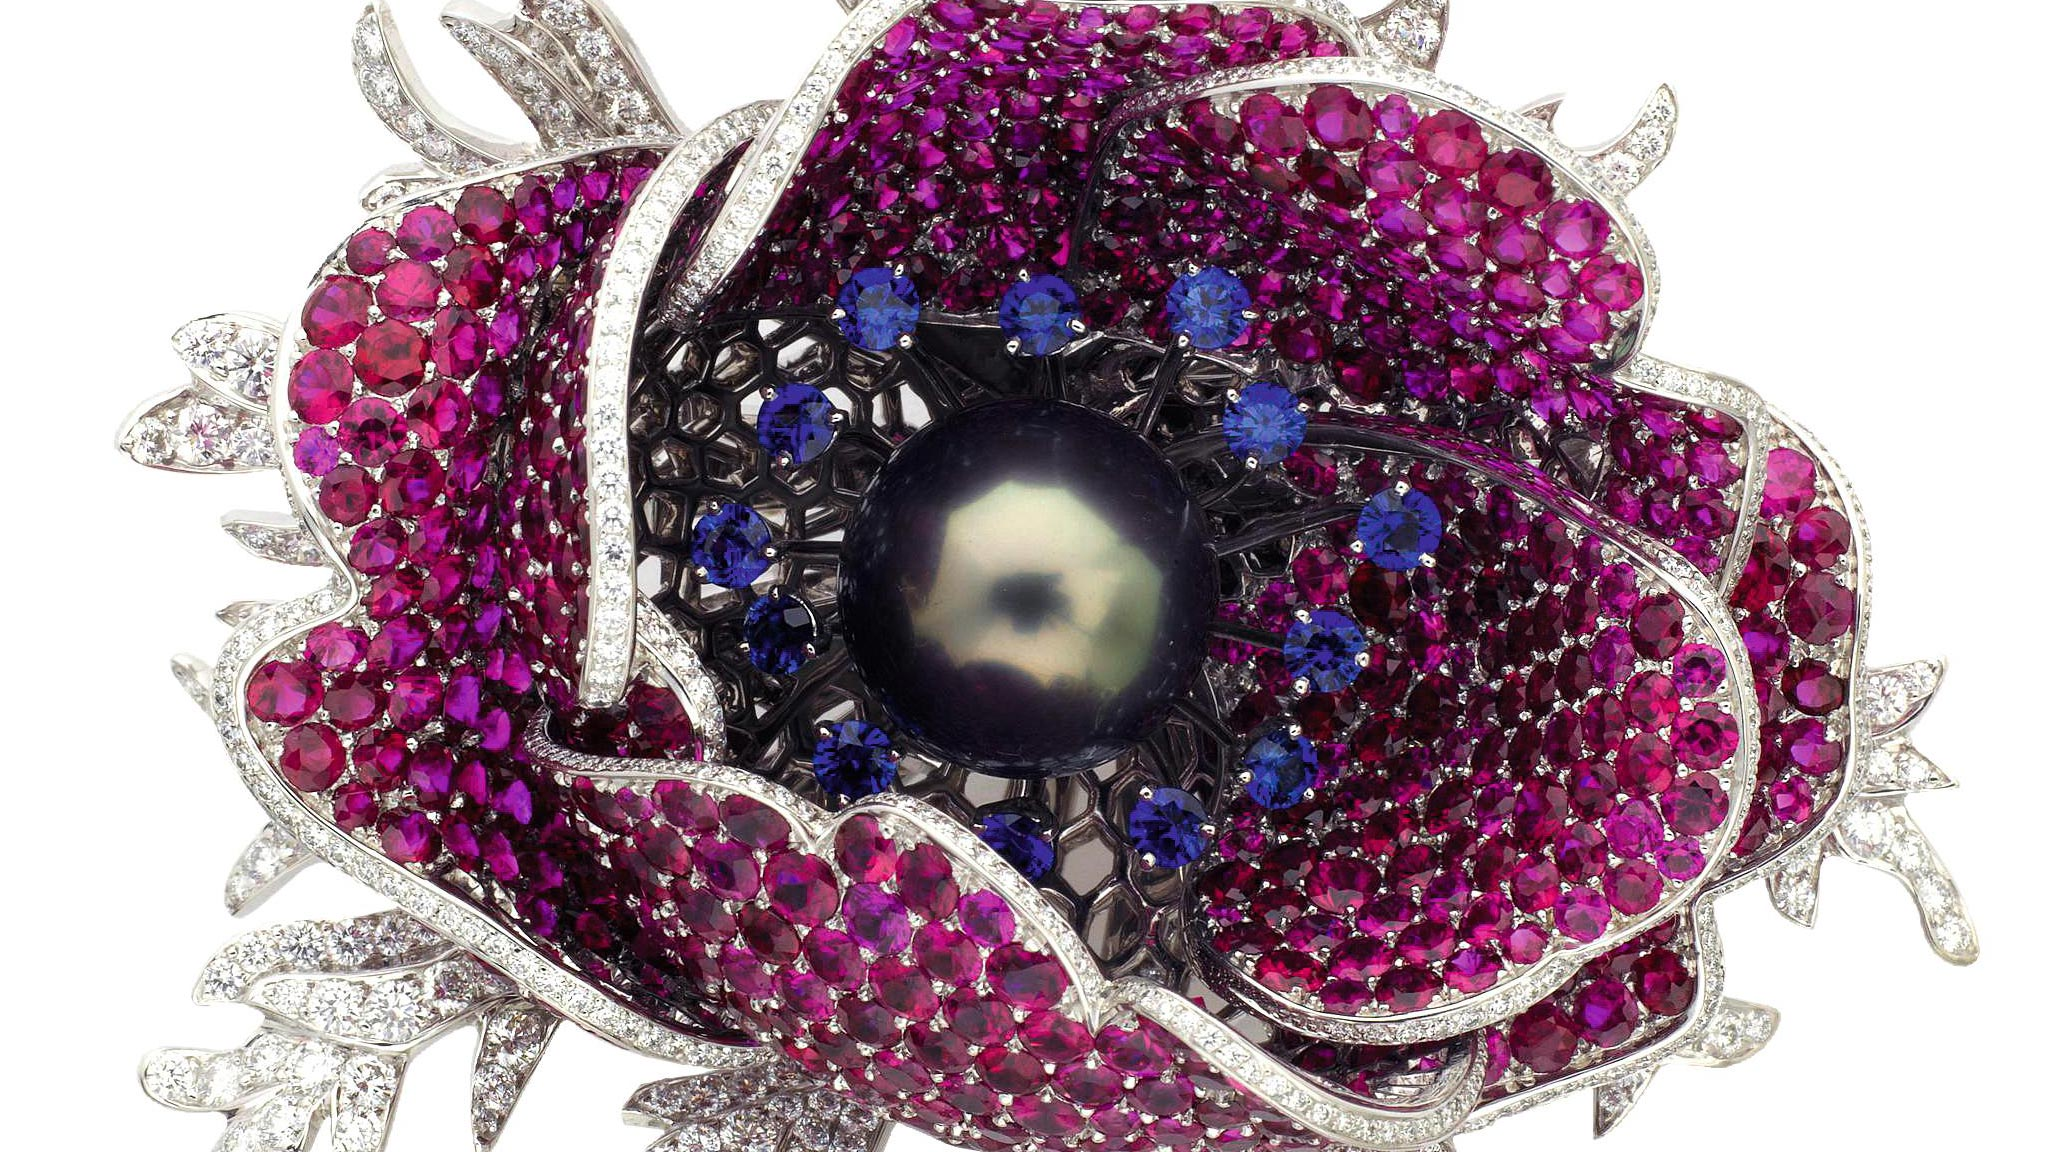 c422be696 Blooms for jewellery design | Financial Times